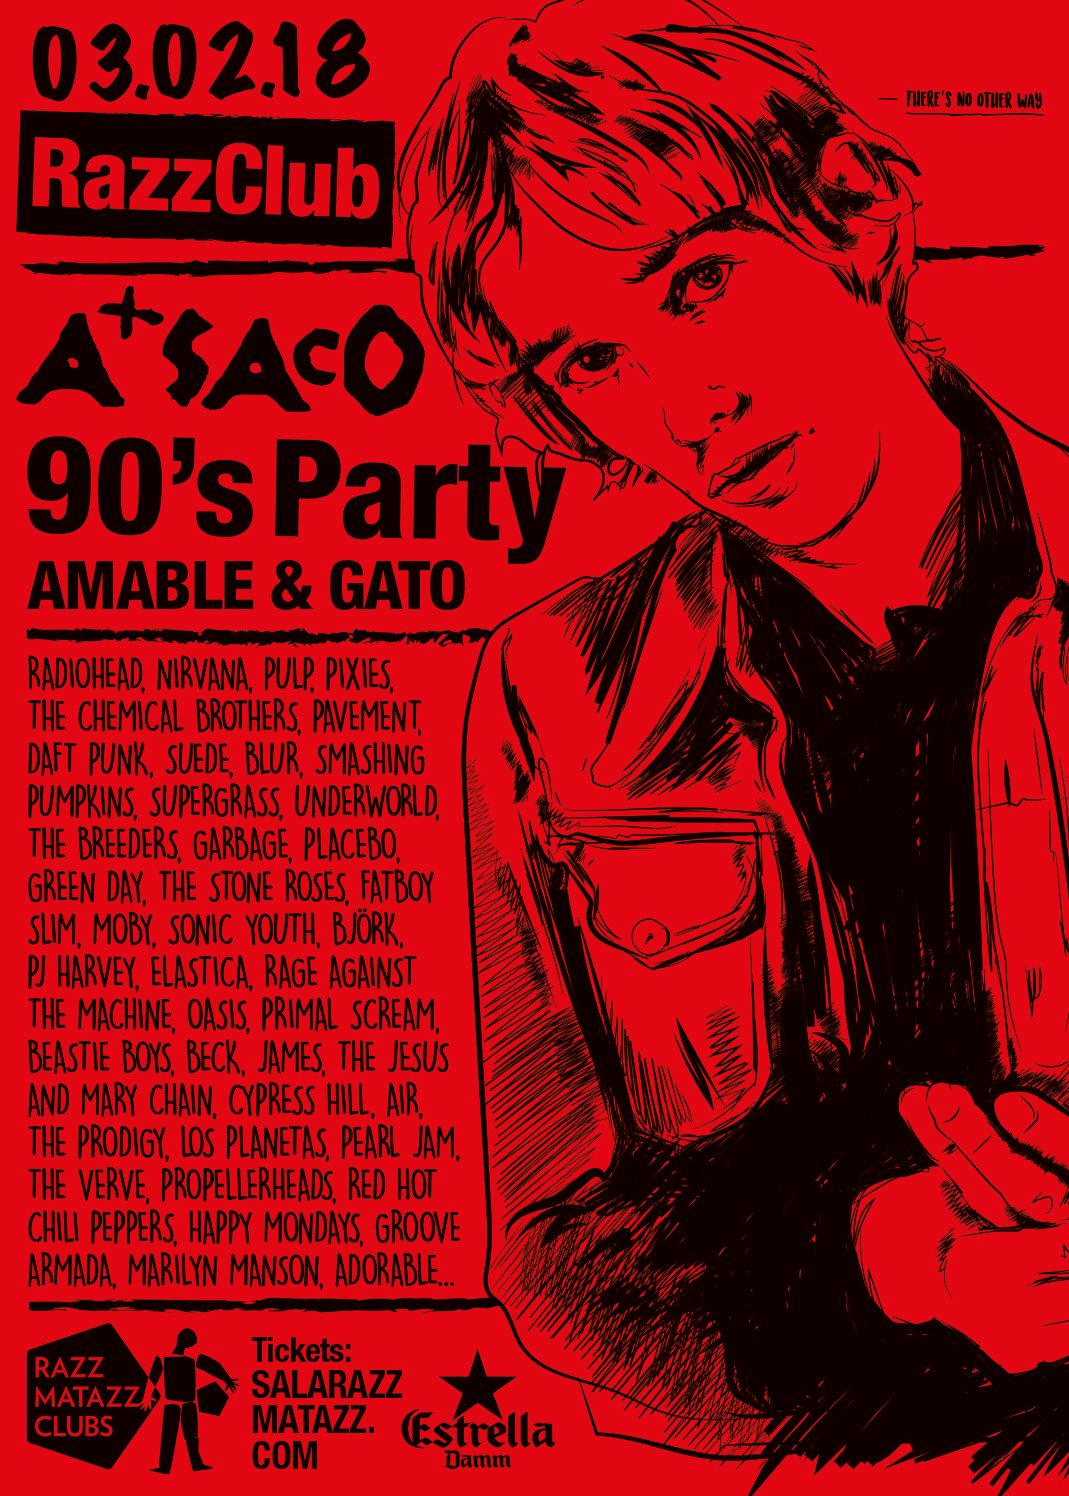 PLAYLIST A Saco 90's Party 03-02-2018